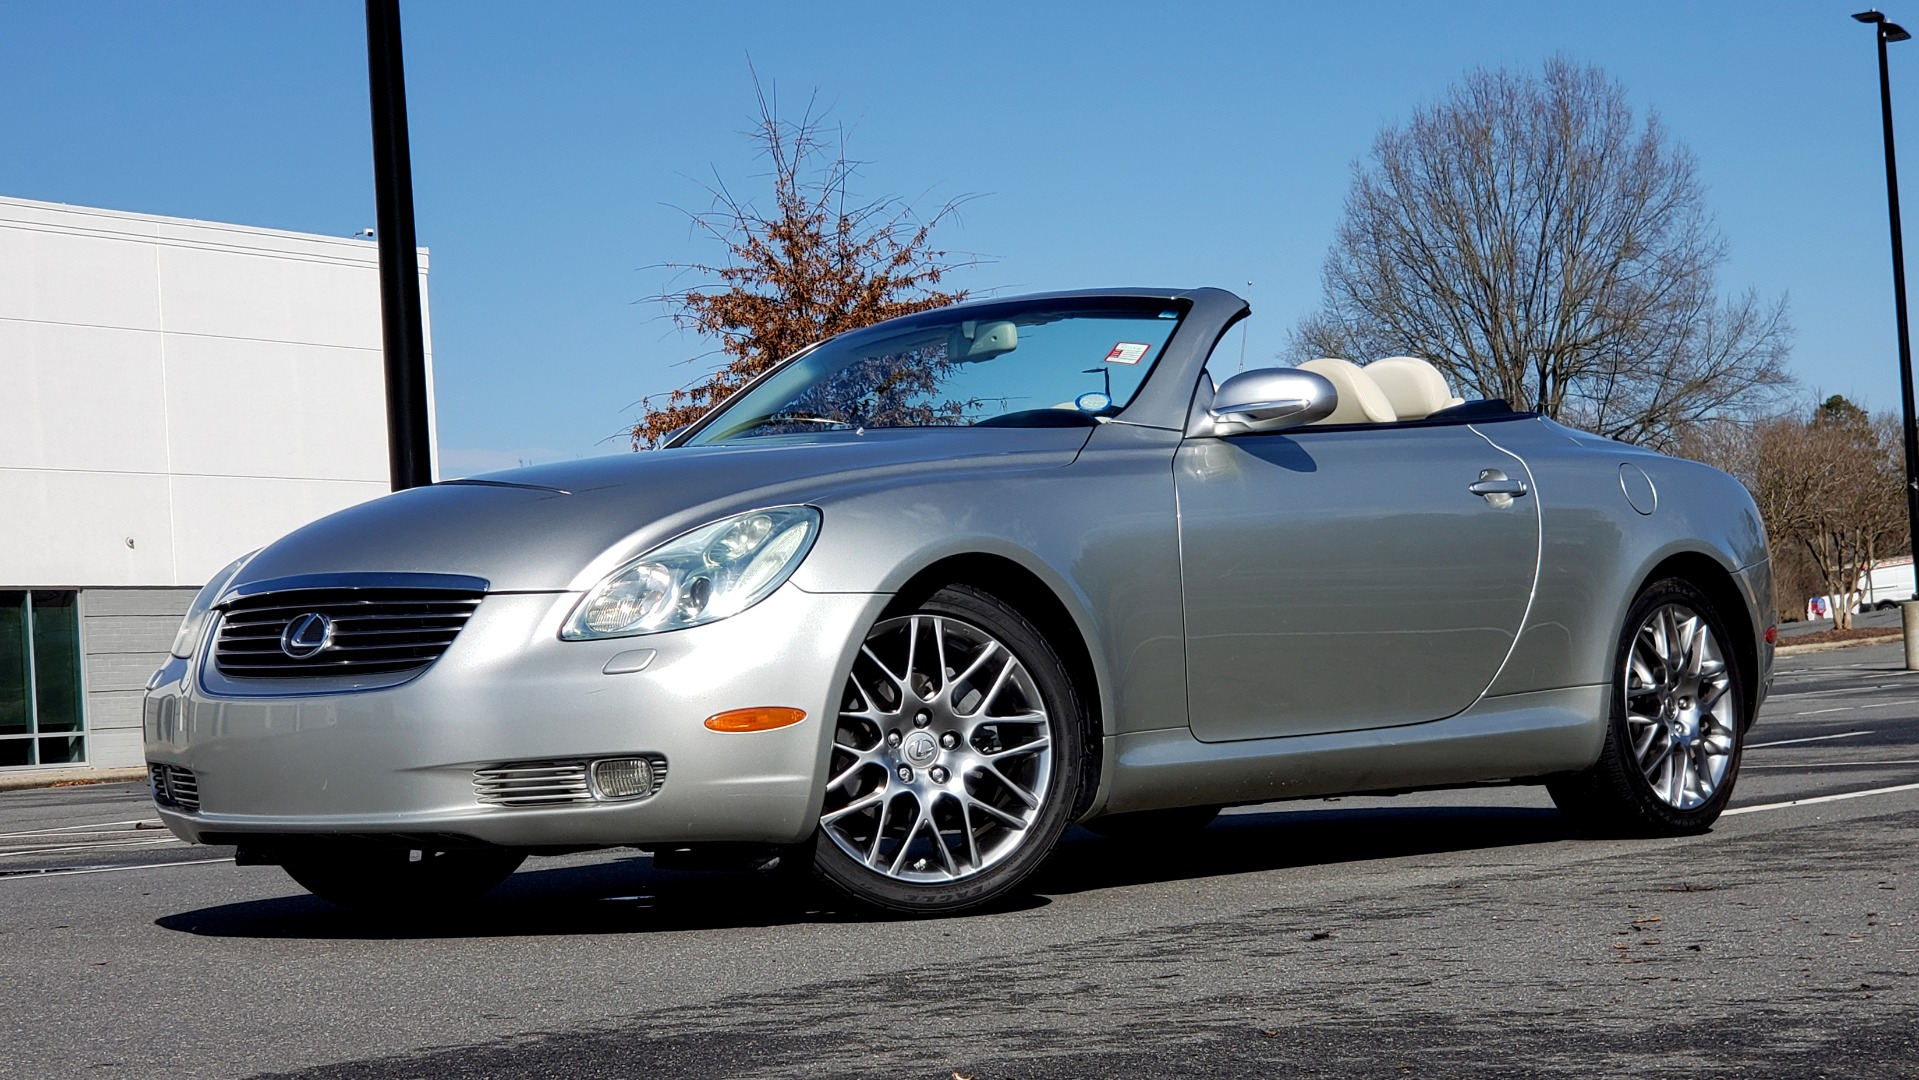 Used 2004 Lexus SC 430 CONVERTIBLE / 4.3L V8 / 5-SPD AUTO / MARK LEVINSON / 18IN WHEELS for sale Sold at Formula Imports in Charlotte NC 28227 1